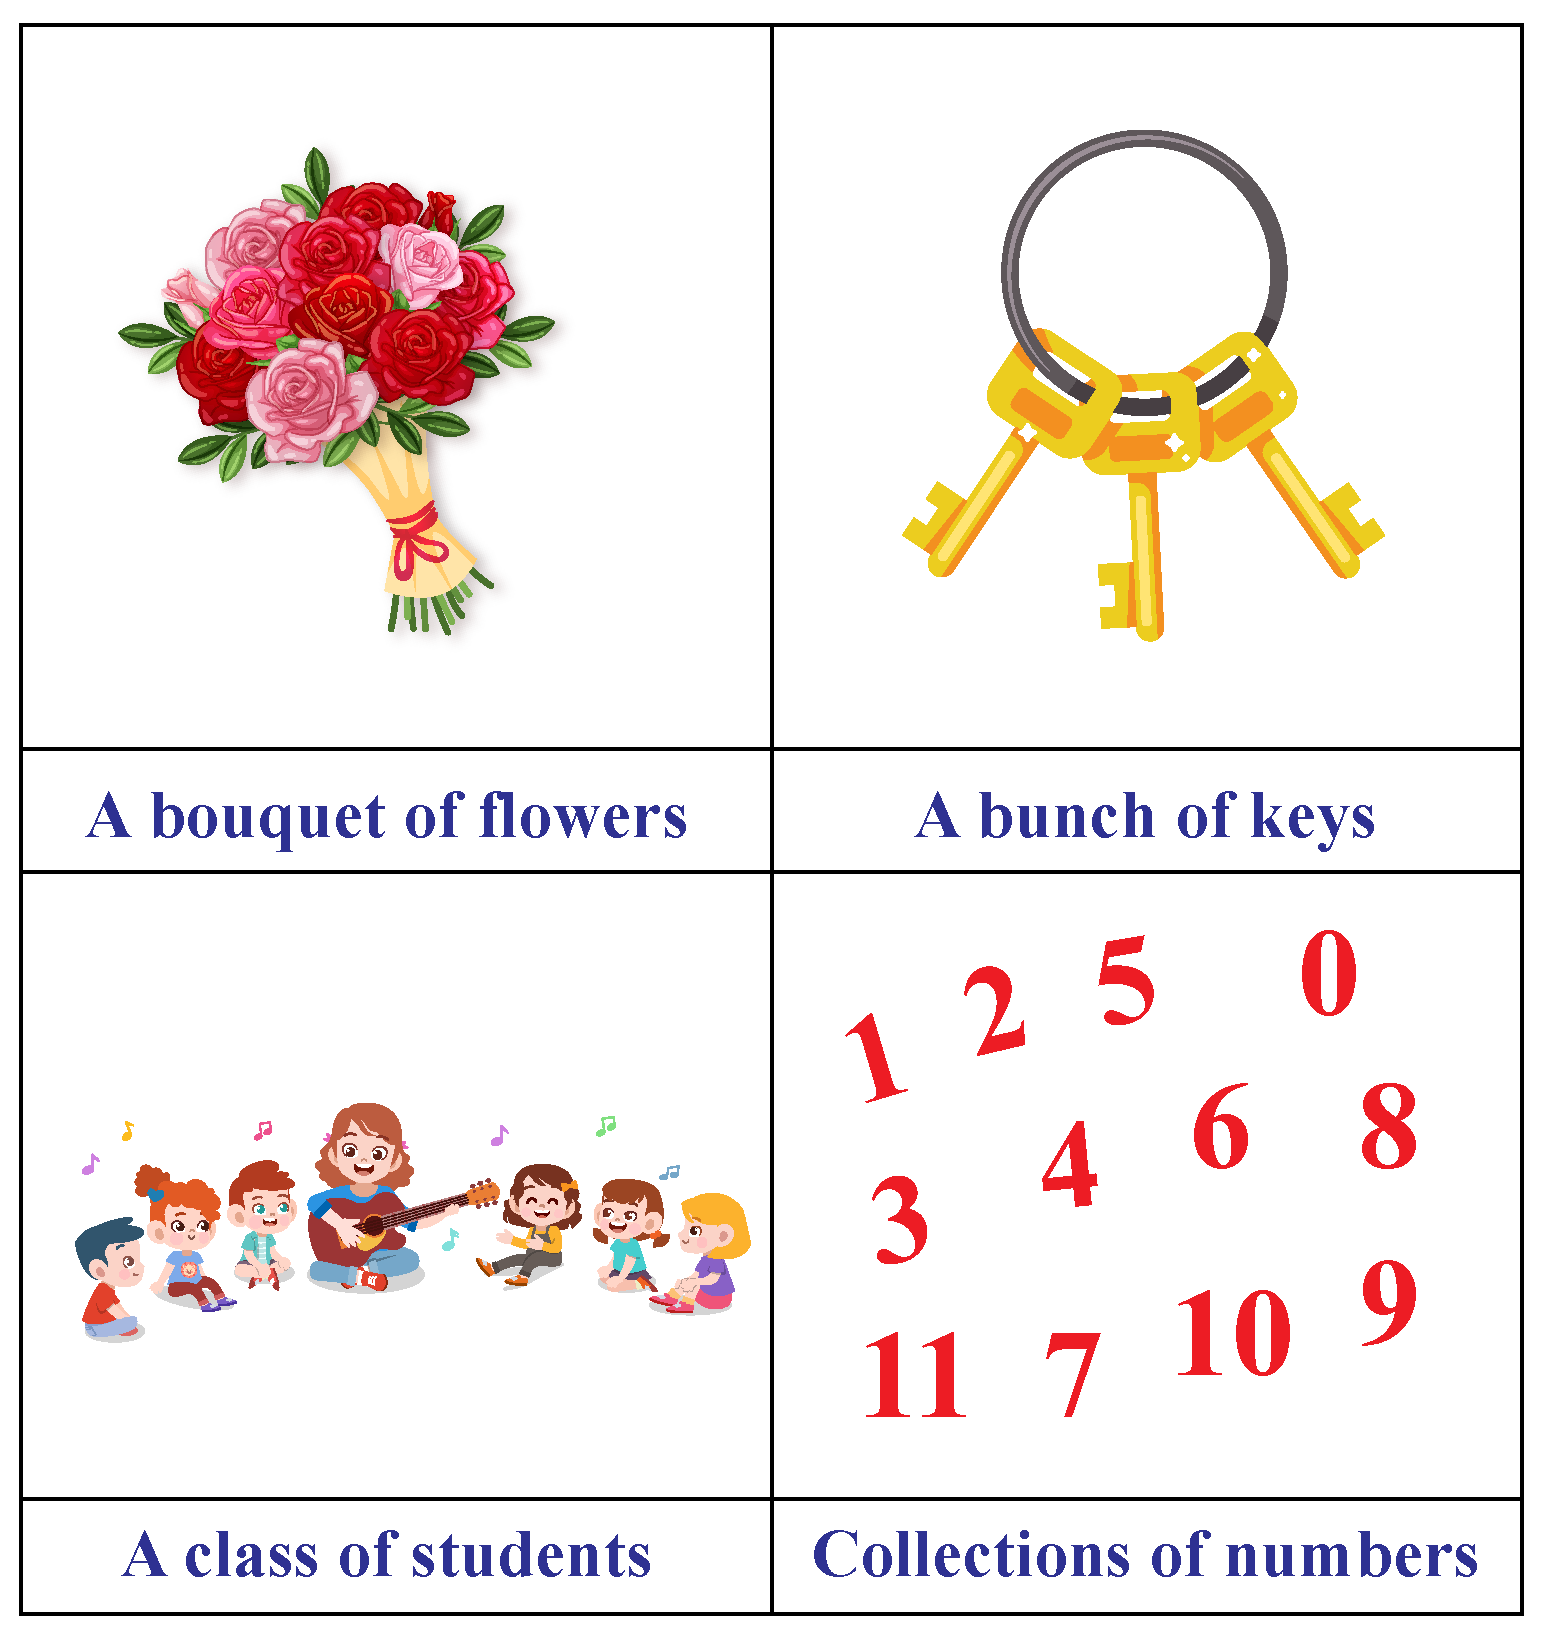 Bouquet of flowers, bunch of keys, class of students, collection of numbers